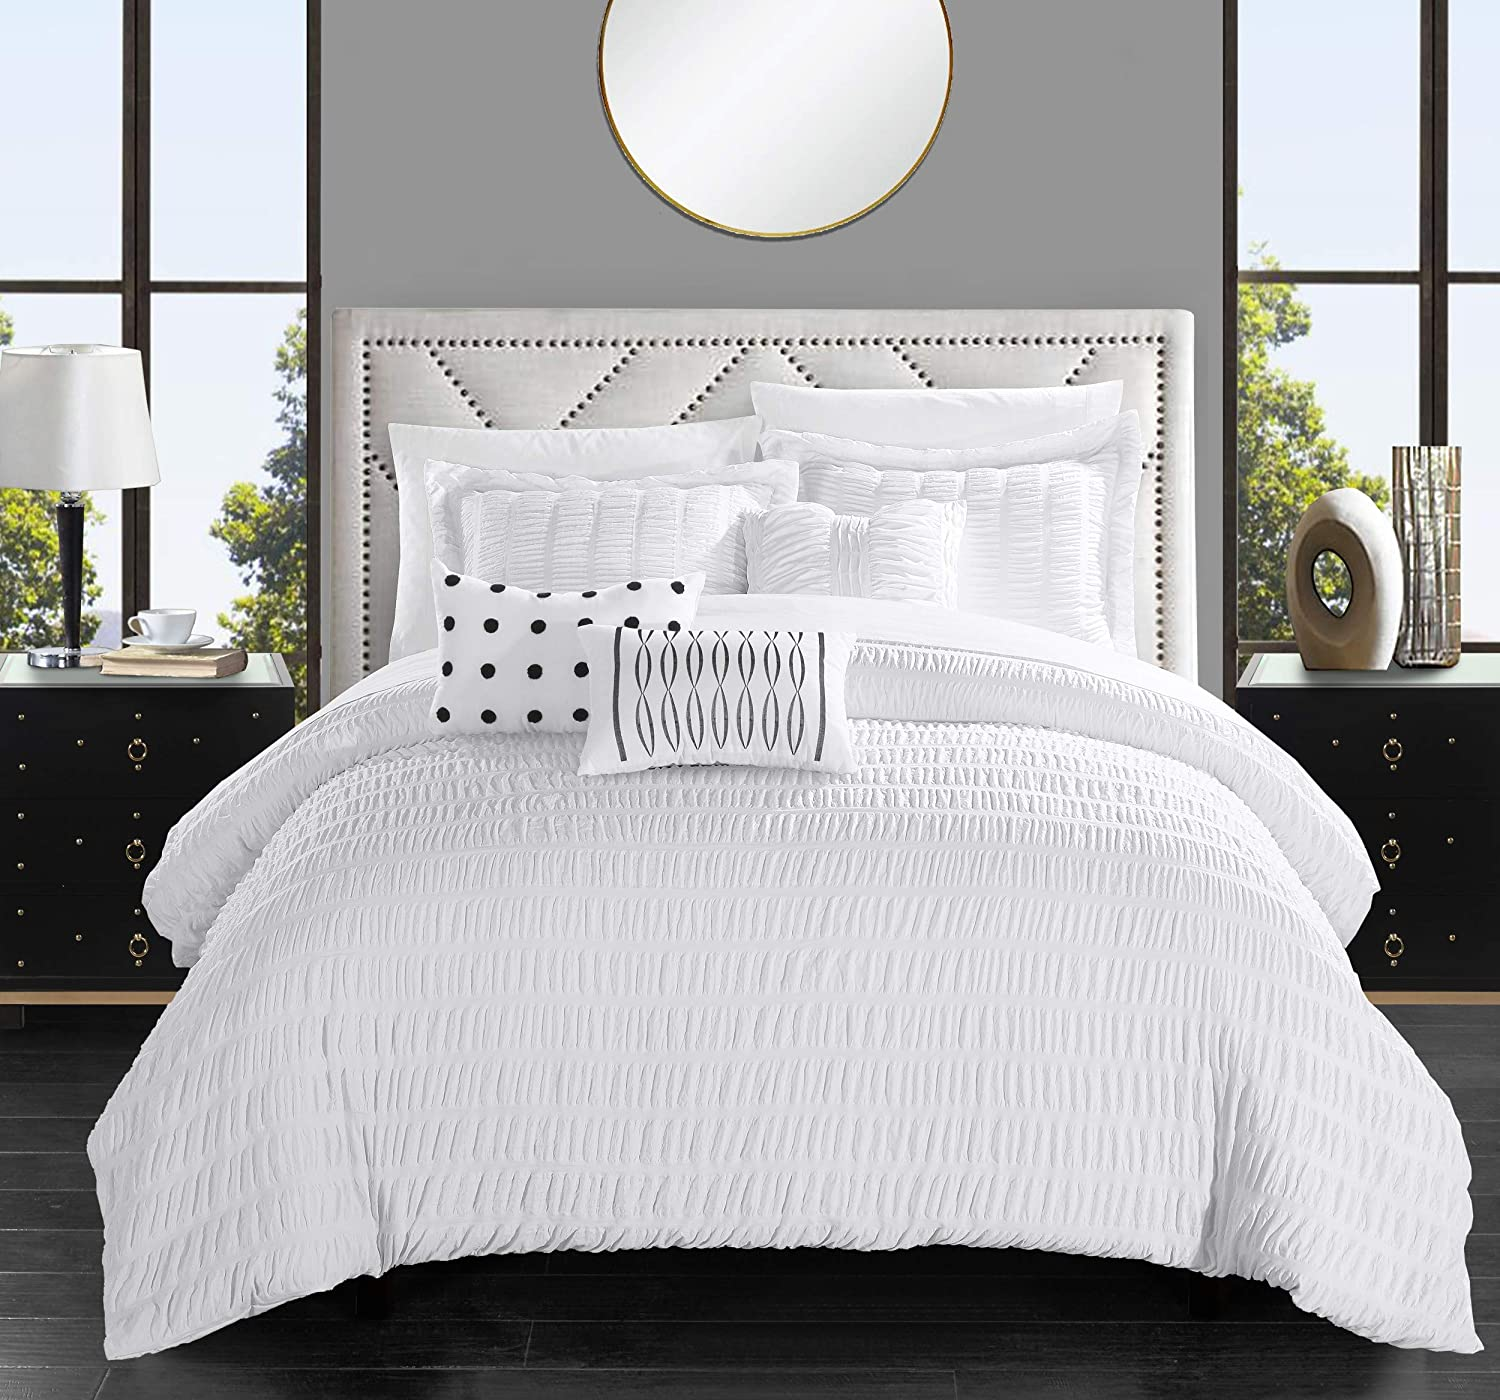 Chic Home Hadassah 6 Piece Comforter Set Striped Ruched Ruffled Bedding - Decorative Pillows Shams Included, Queen, White